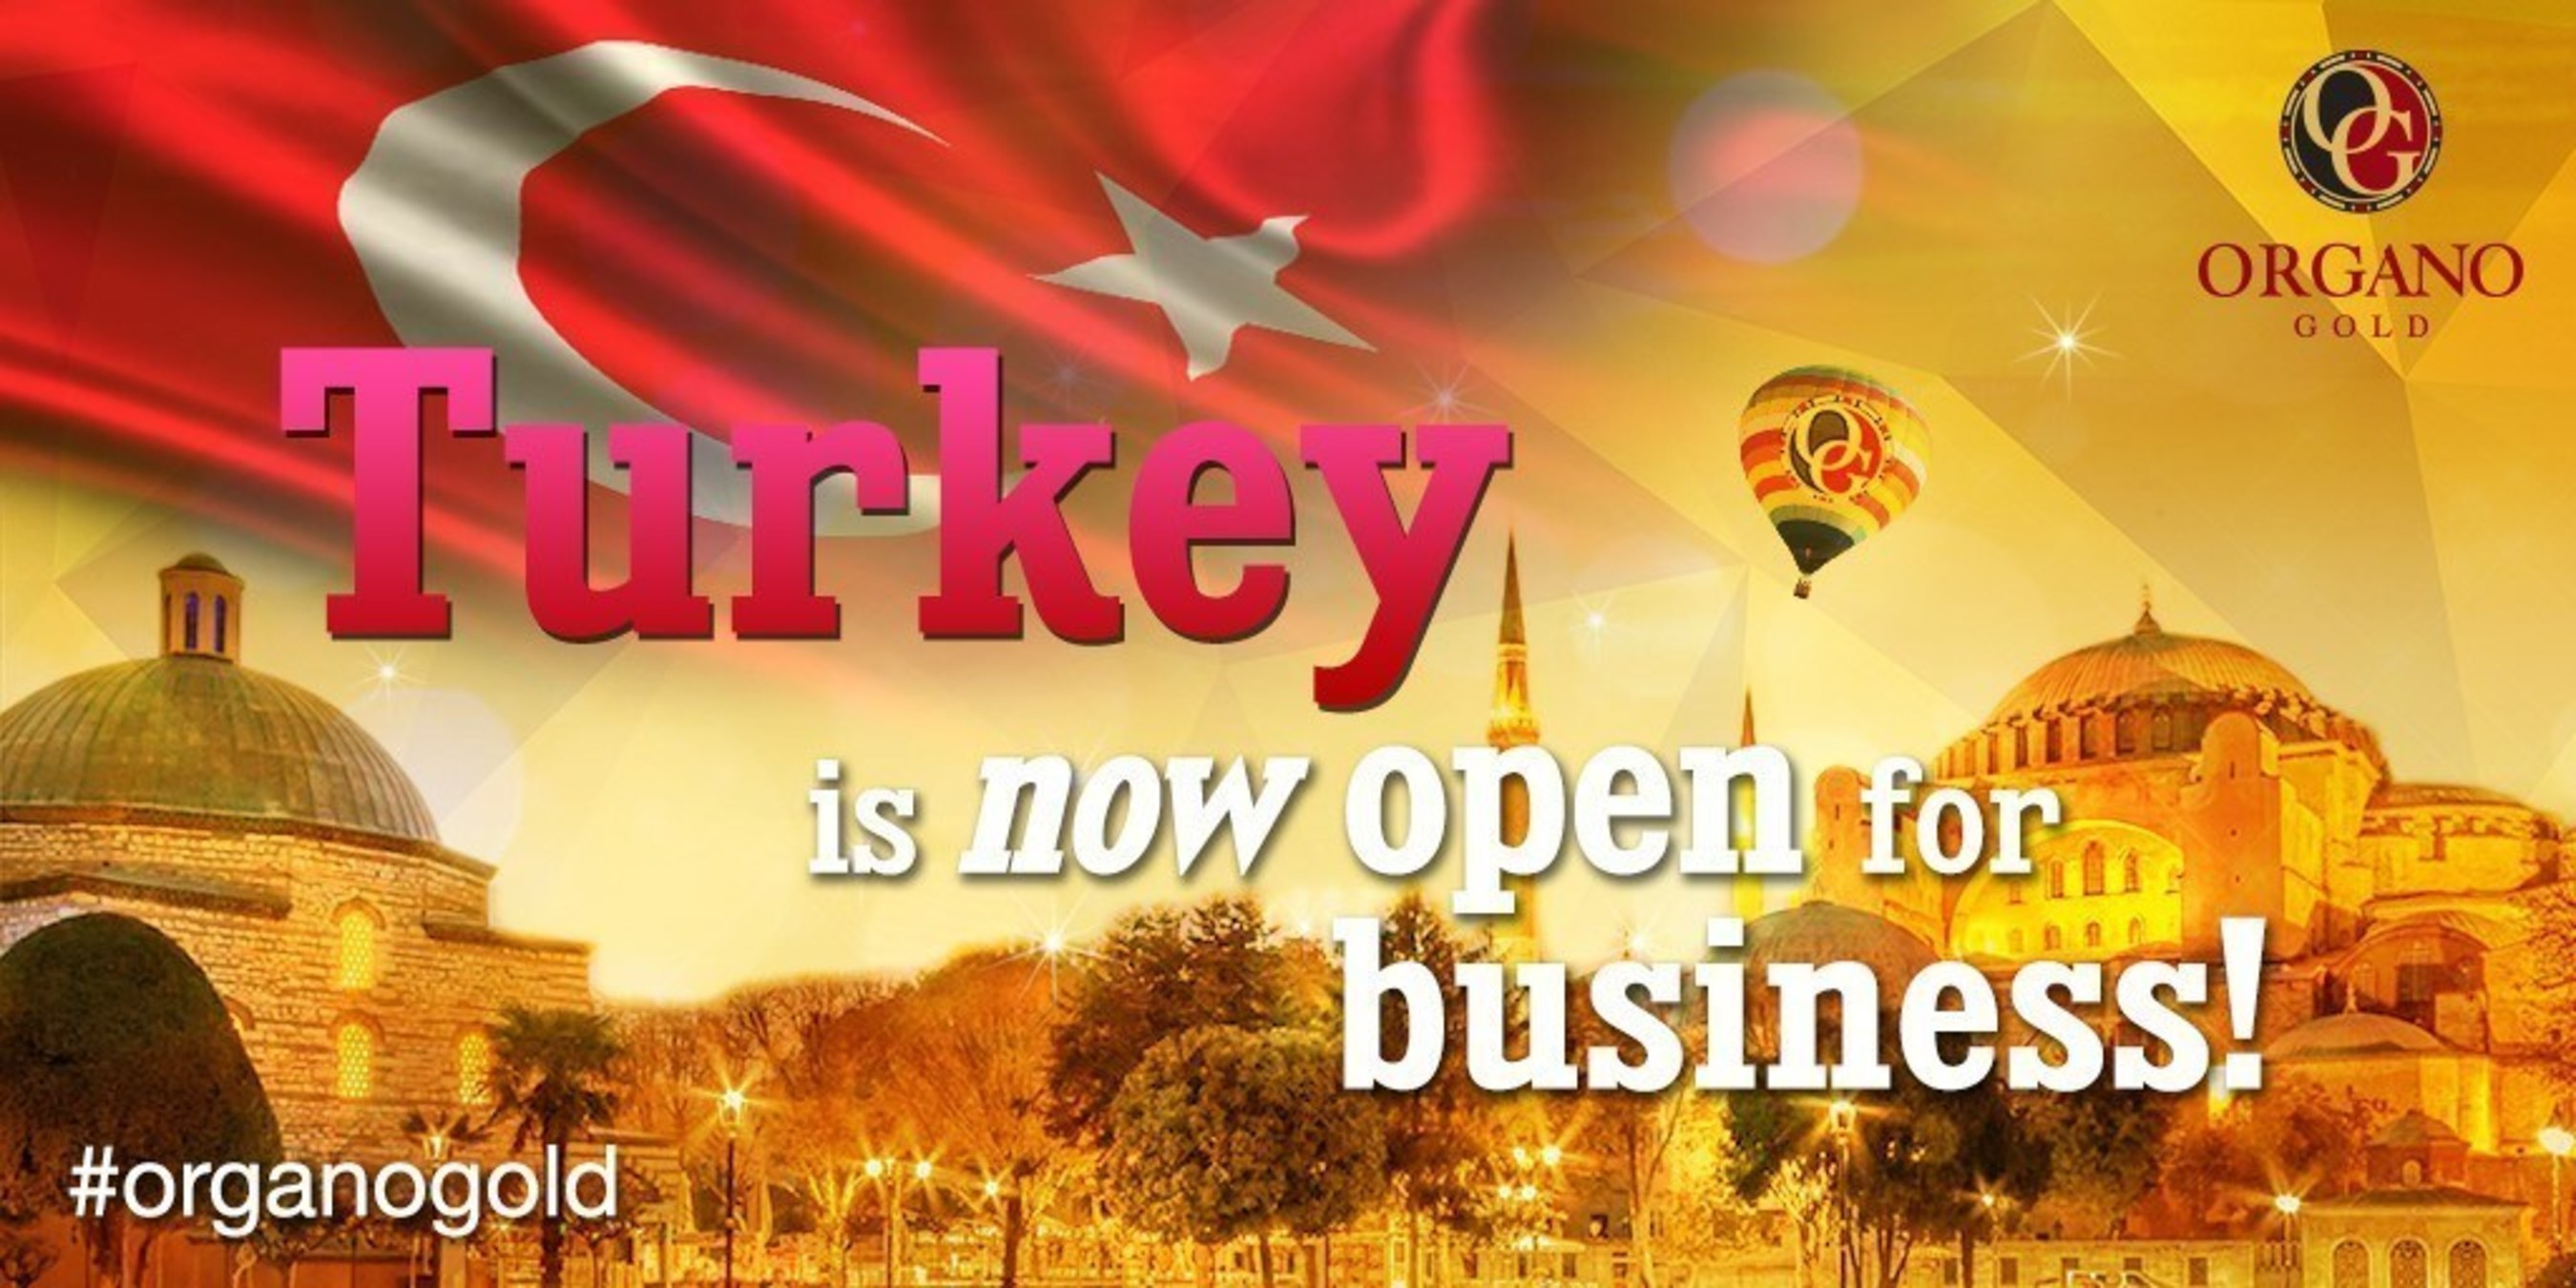 Turkey is now open for business